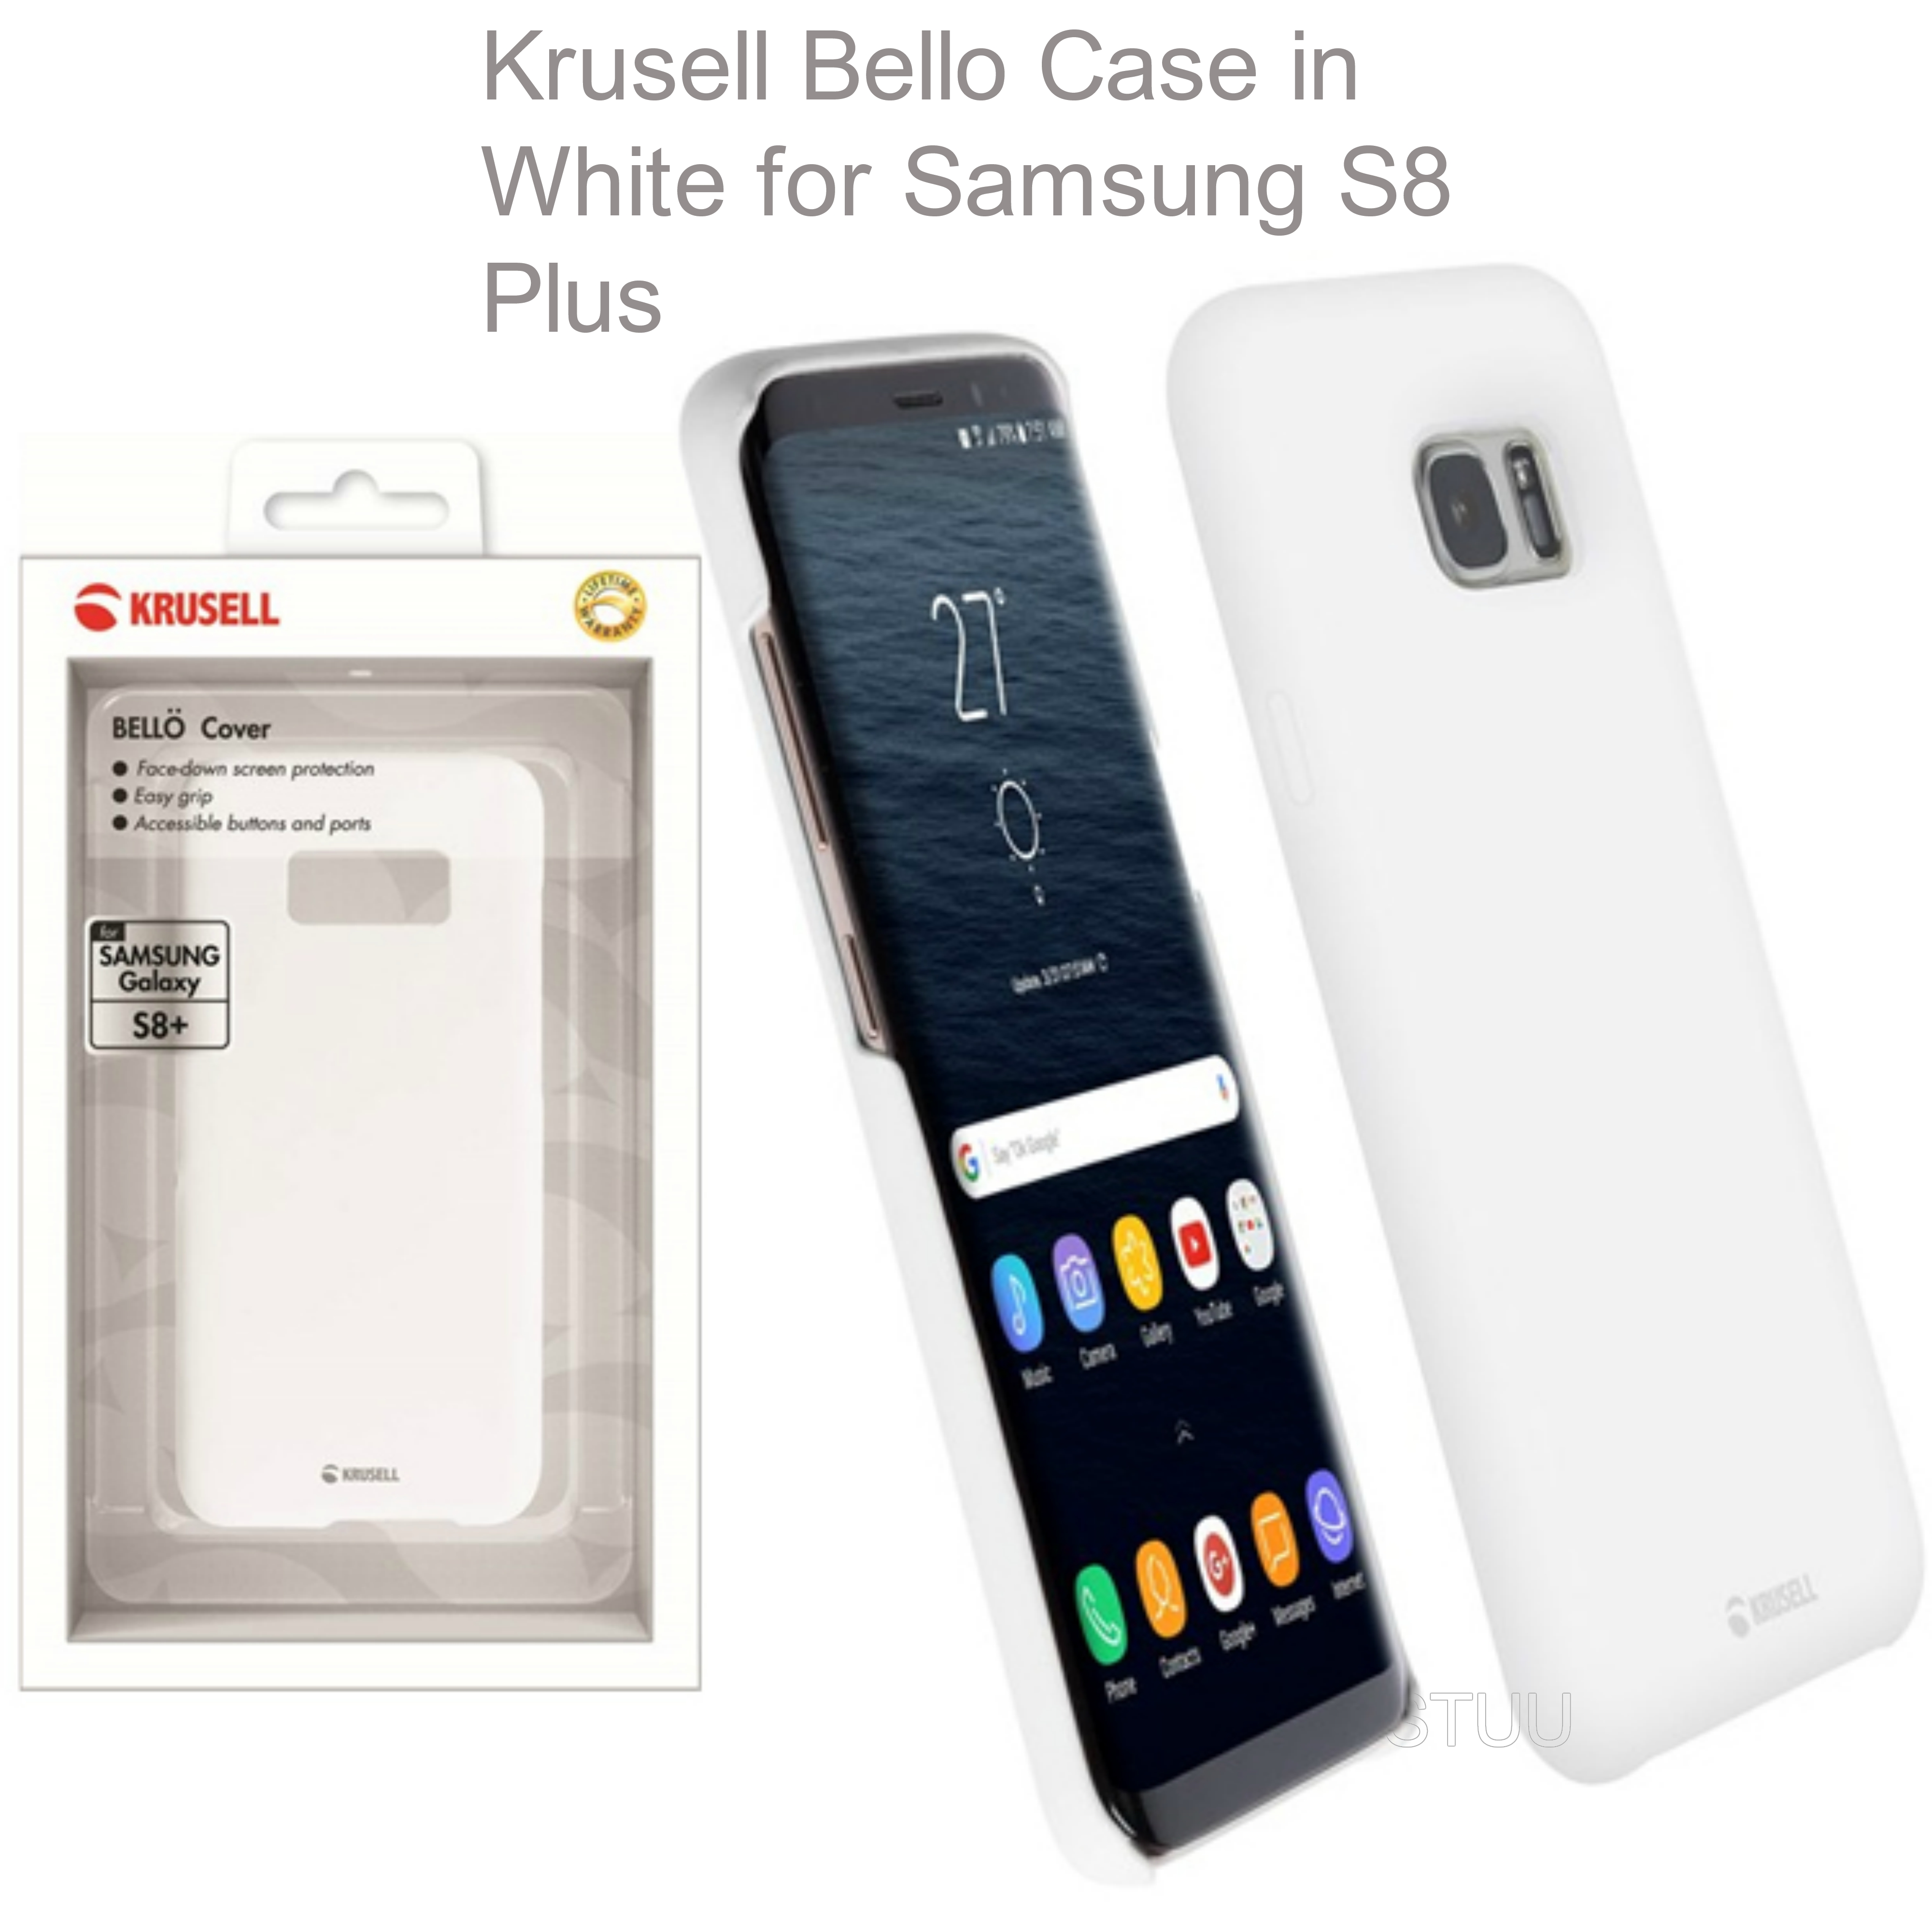 Krusell Bello Back Case | Protective Mobile Phone Cover | For Samsung Galaxy S8 Plus